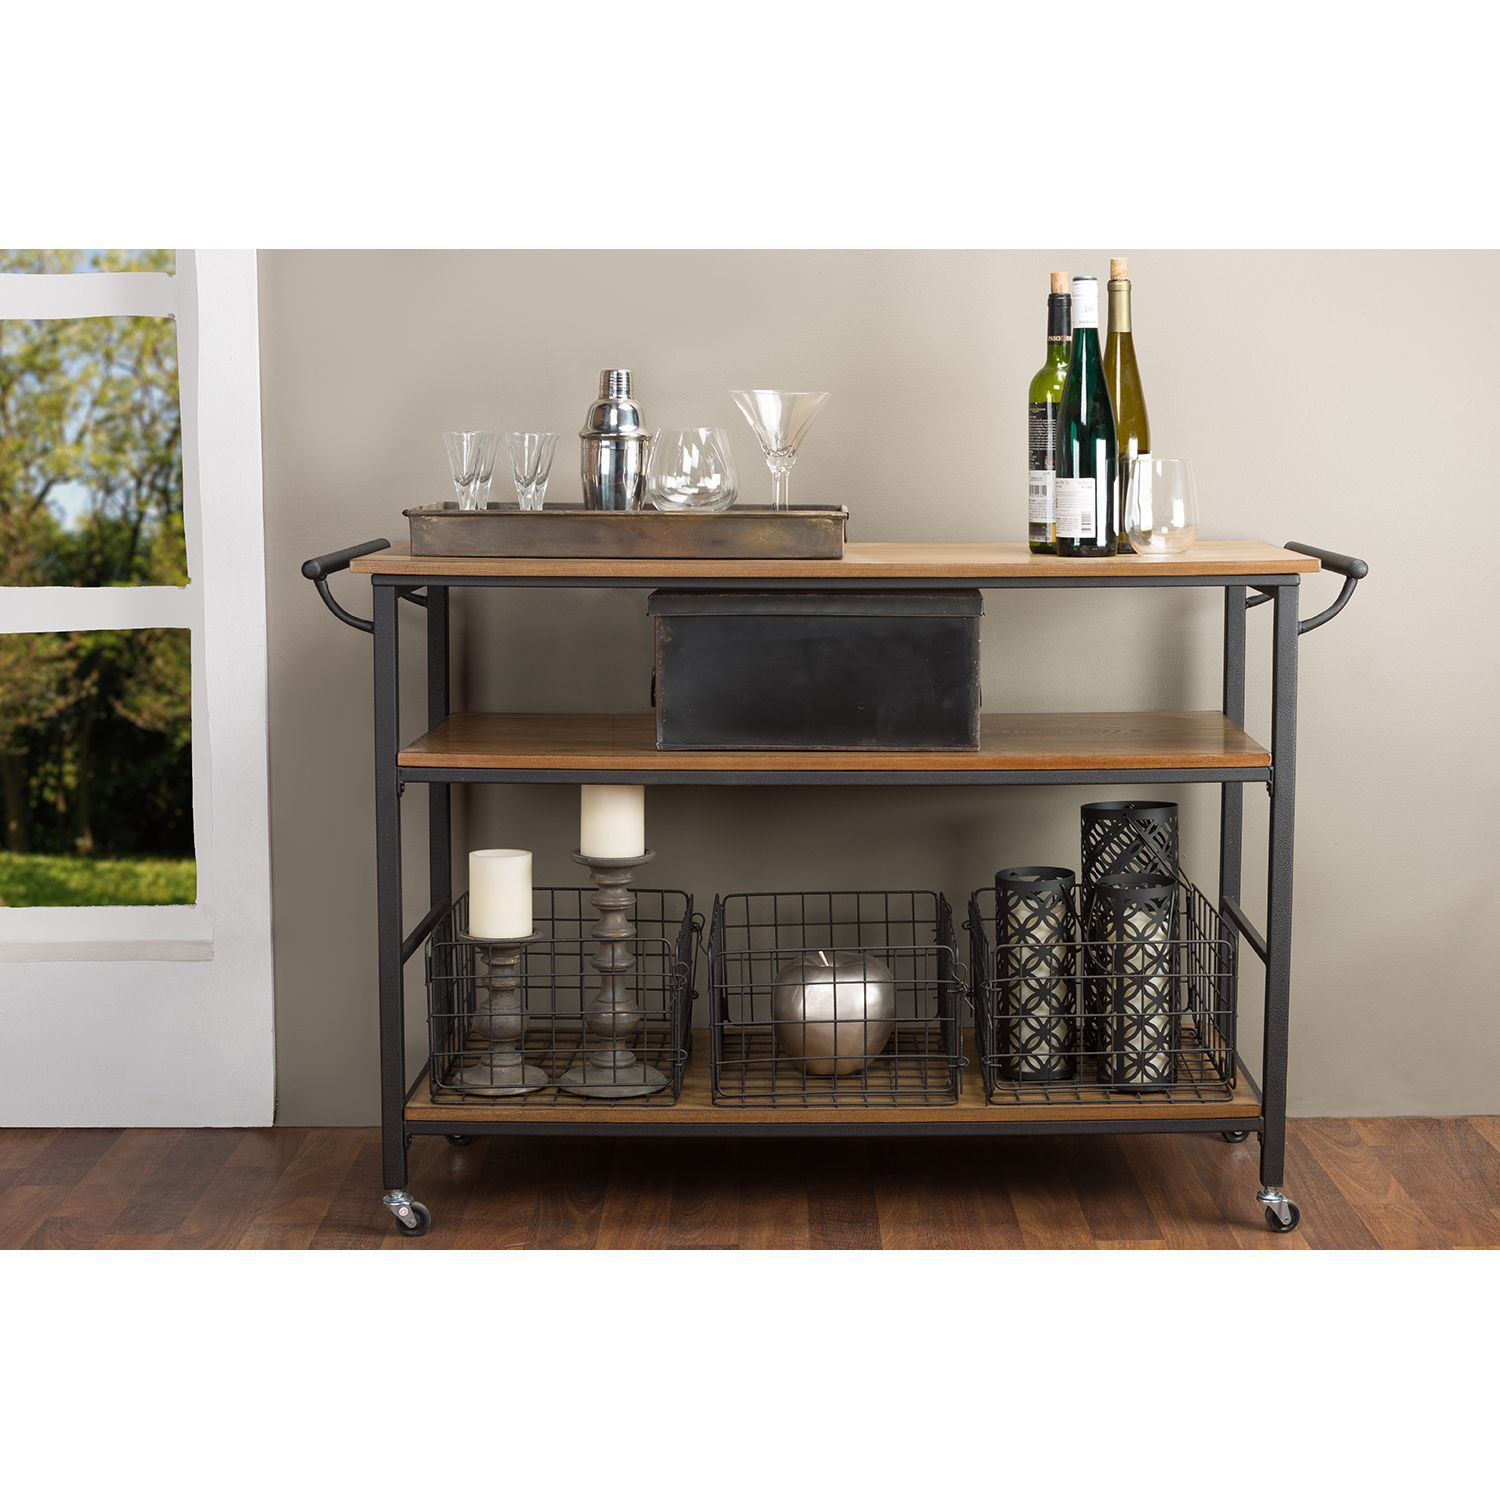 Wood And Metal Jackson Kitchen Cart: Stark Rustic Styling Plus Generous Surface Space Combine